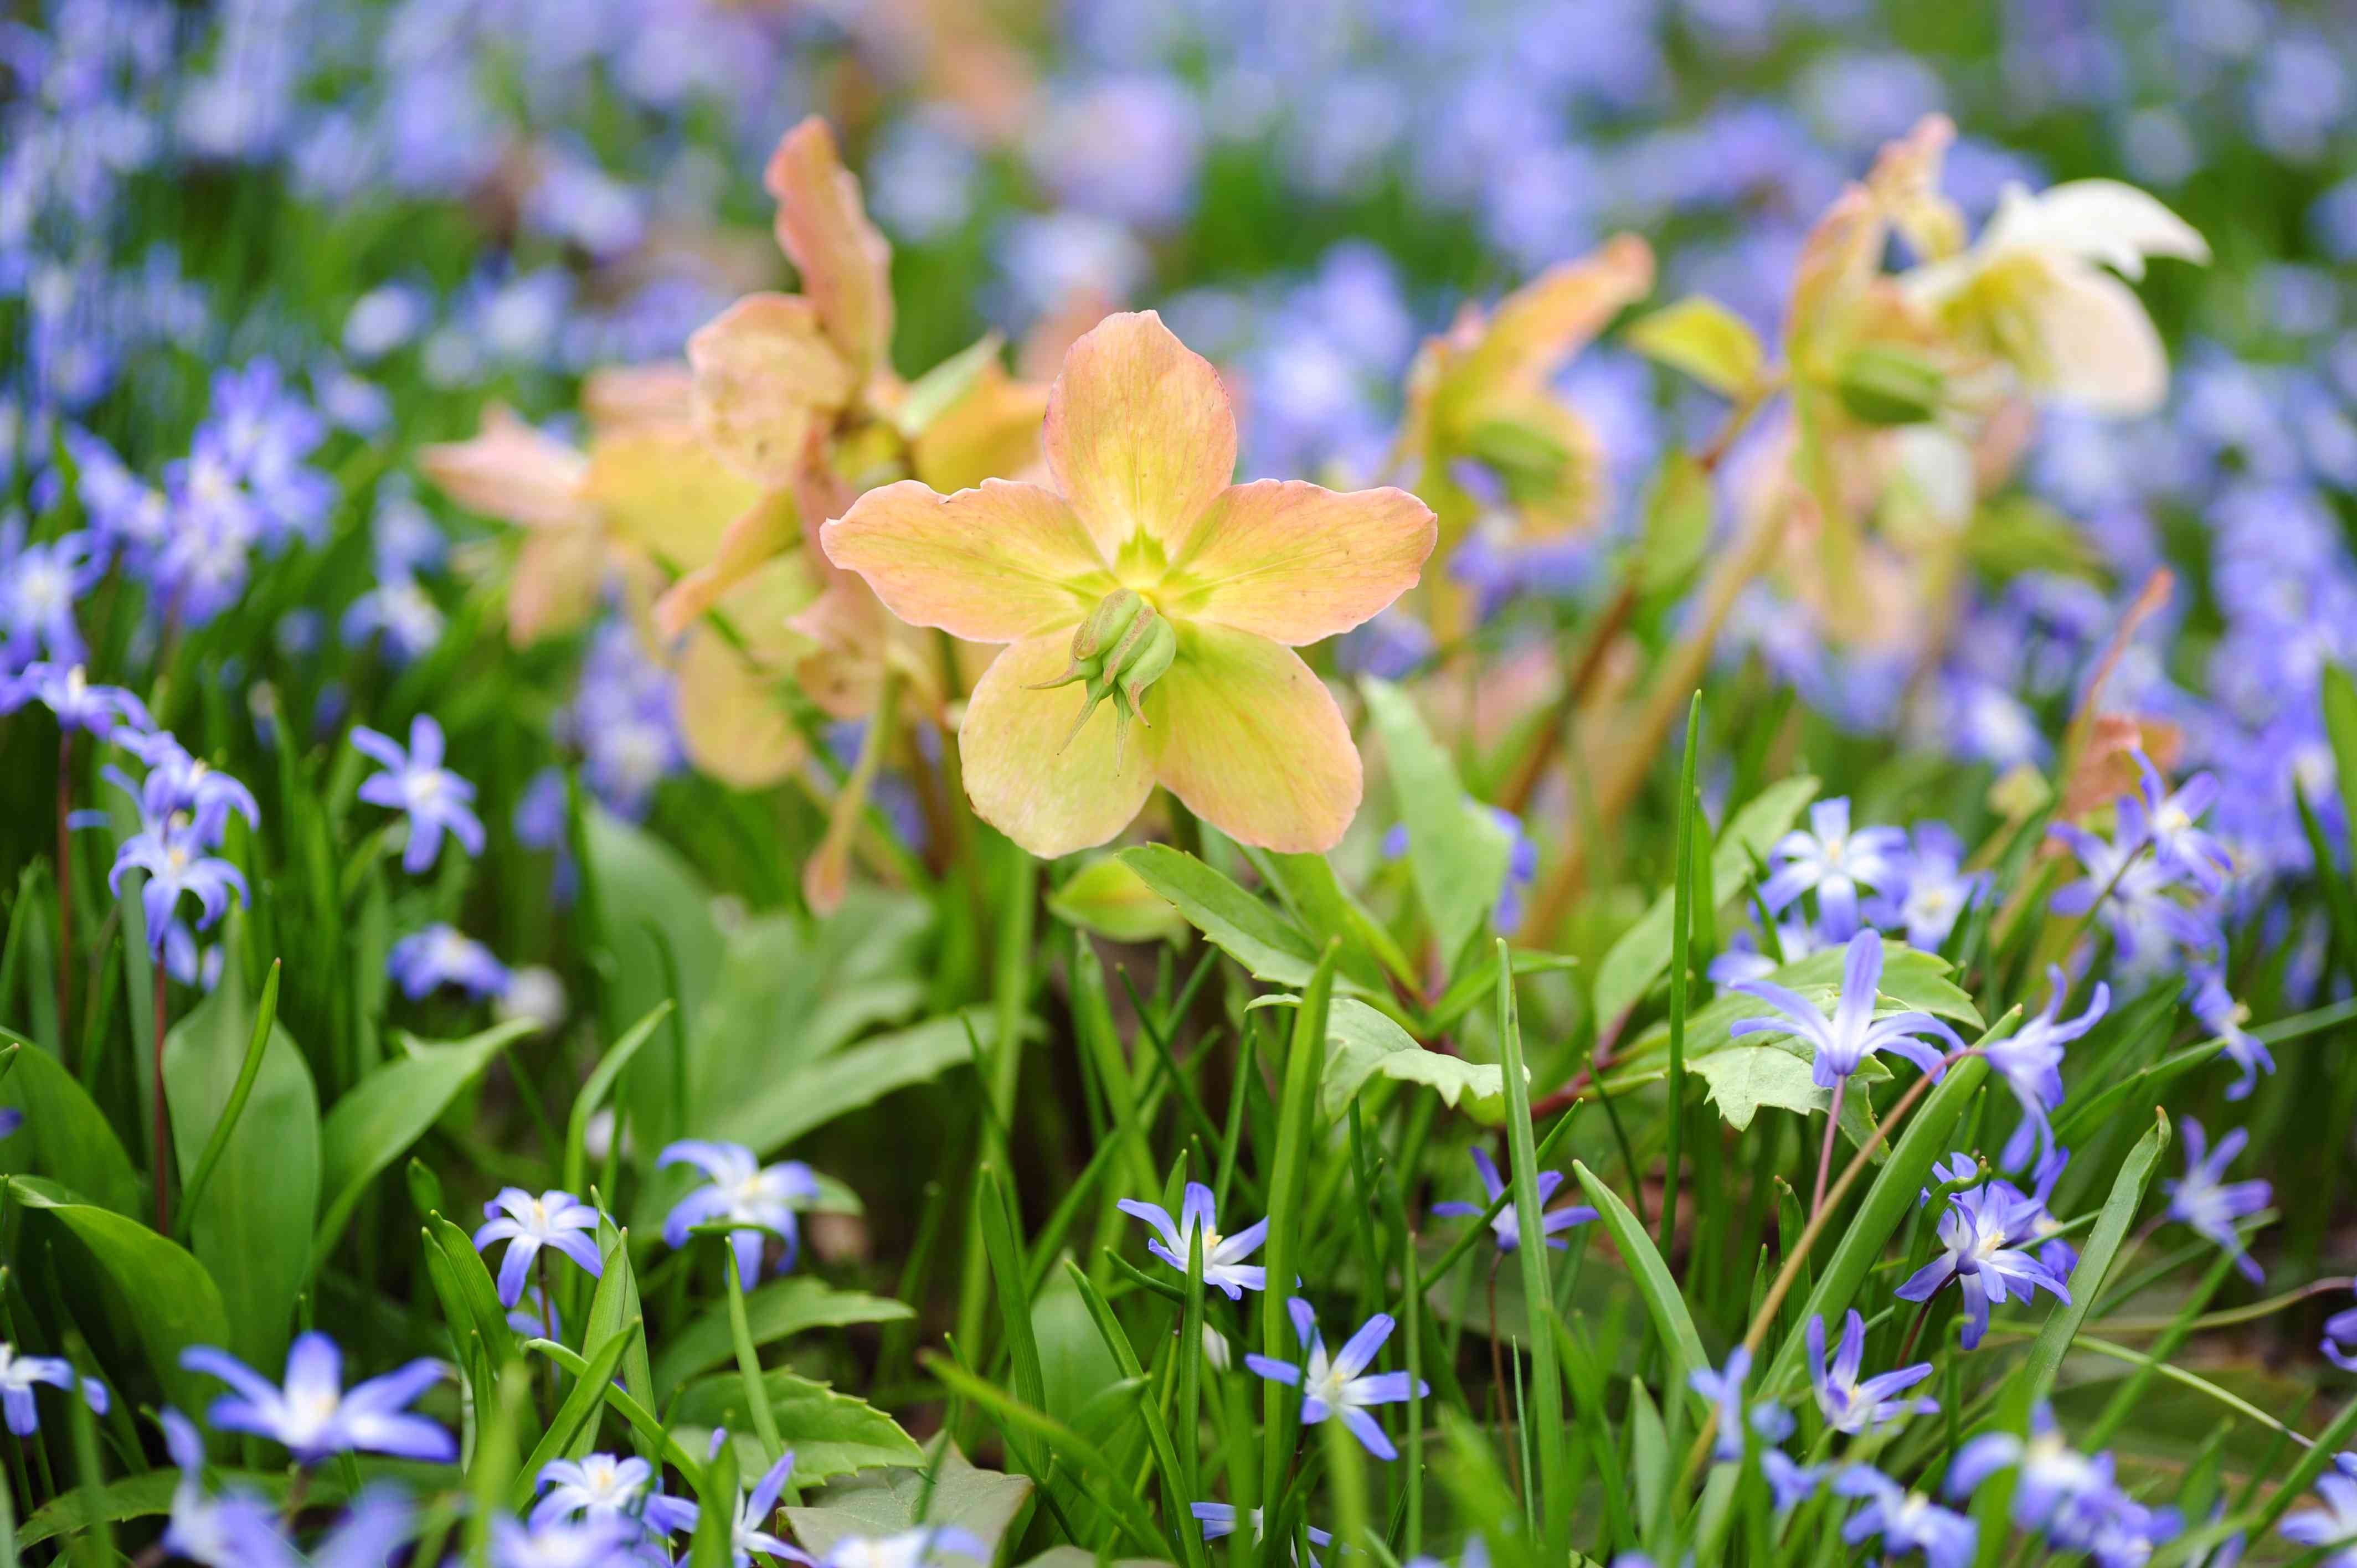 Hellebore plant with orange flowers surrounded by small purple flowers